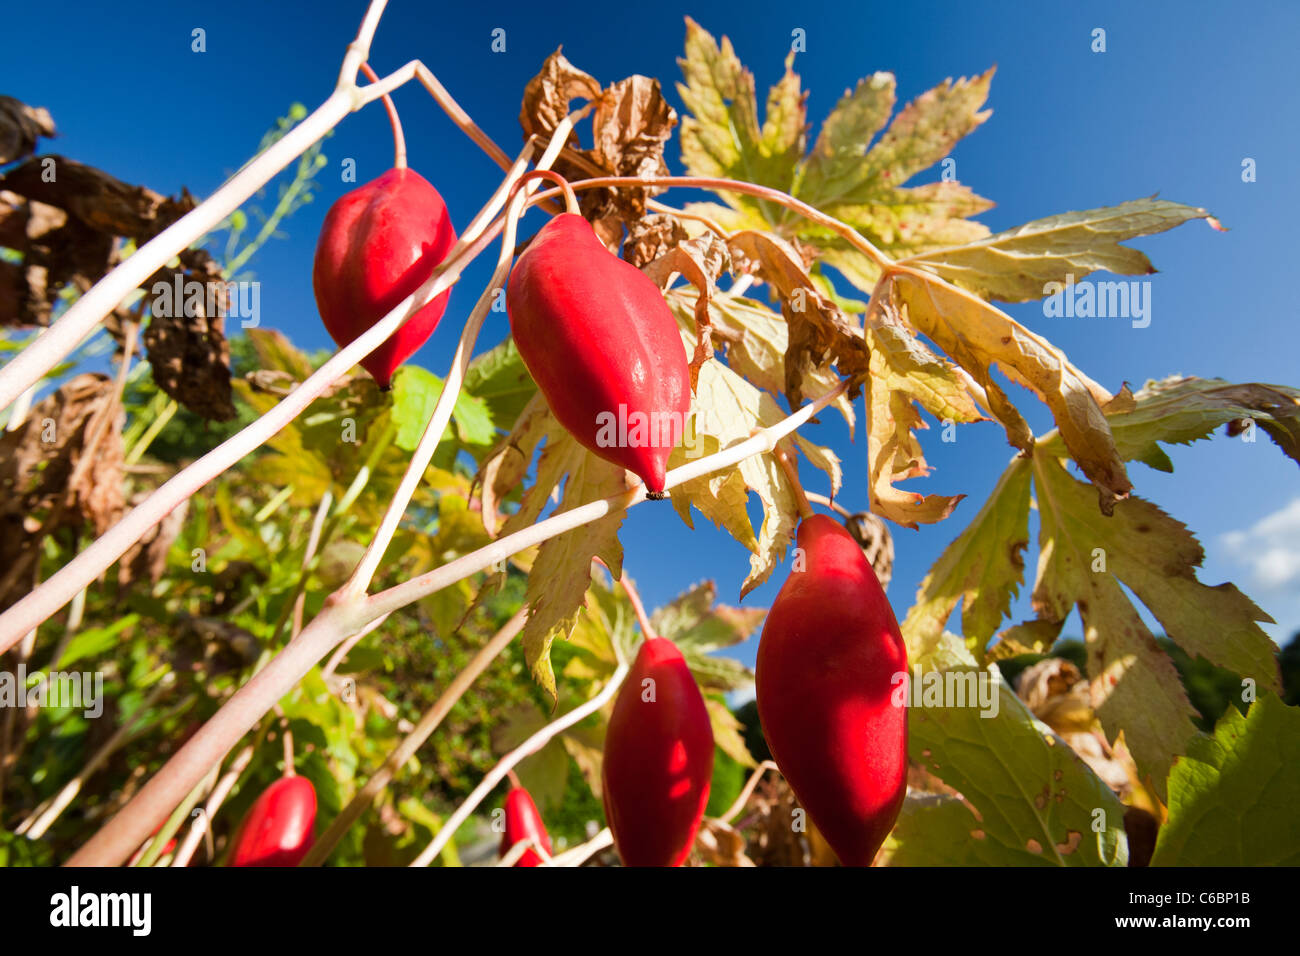 The fruits of Podophyllum hexandrum, or Himalayan may apple, also known as the Indian may apple. - Stock Image